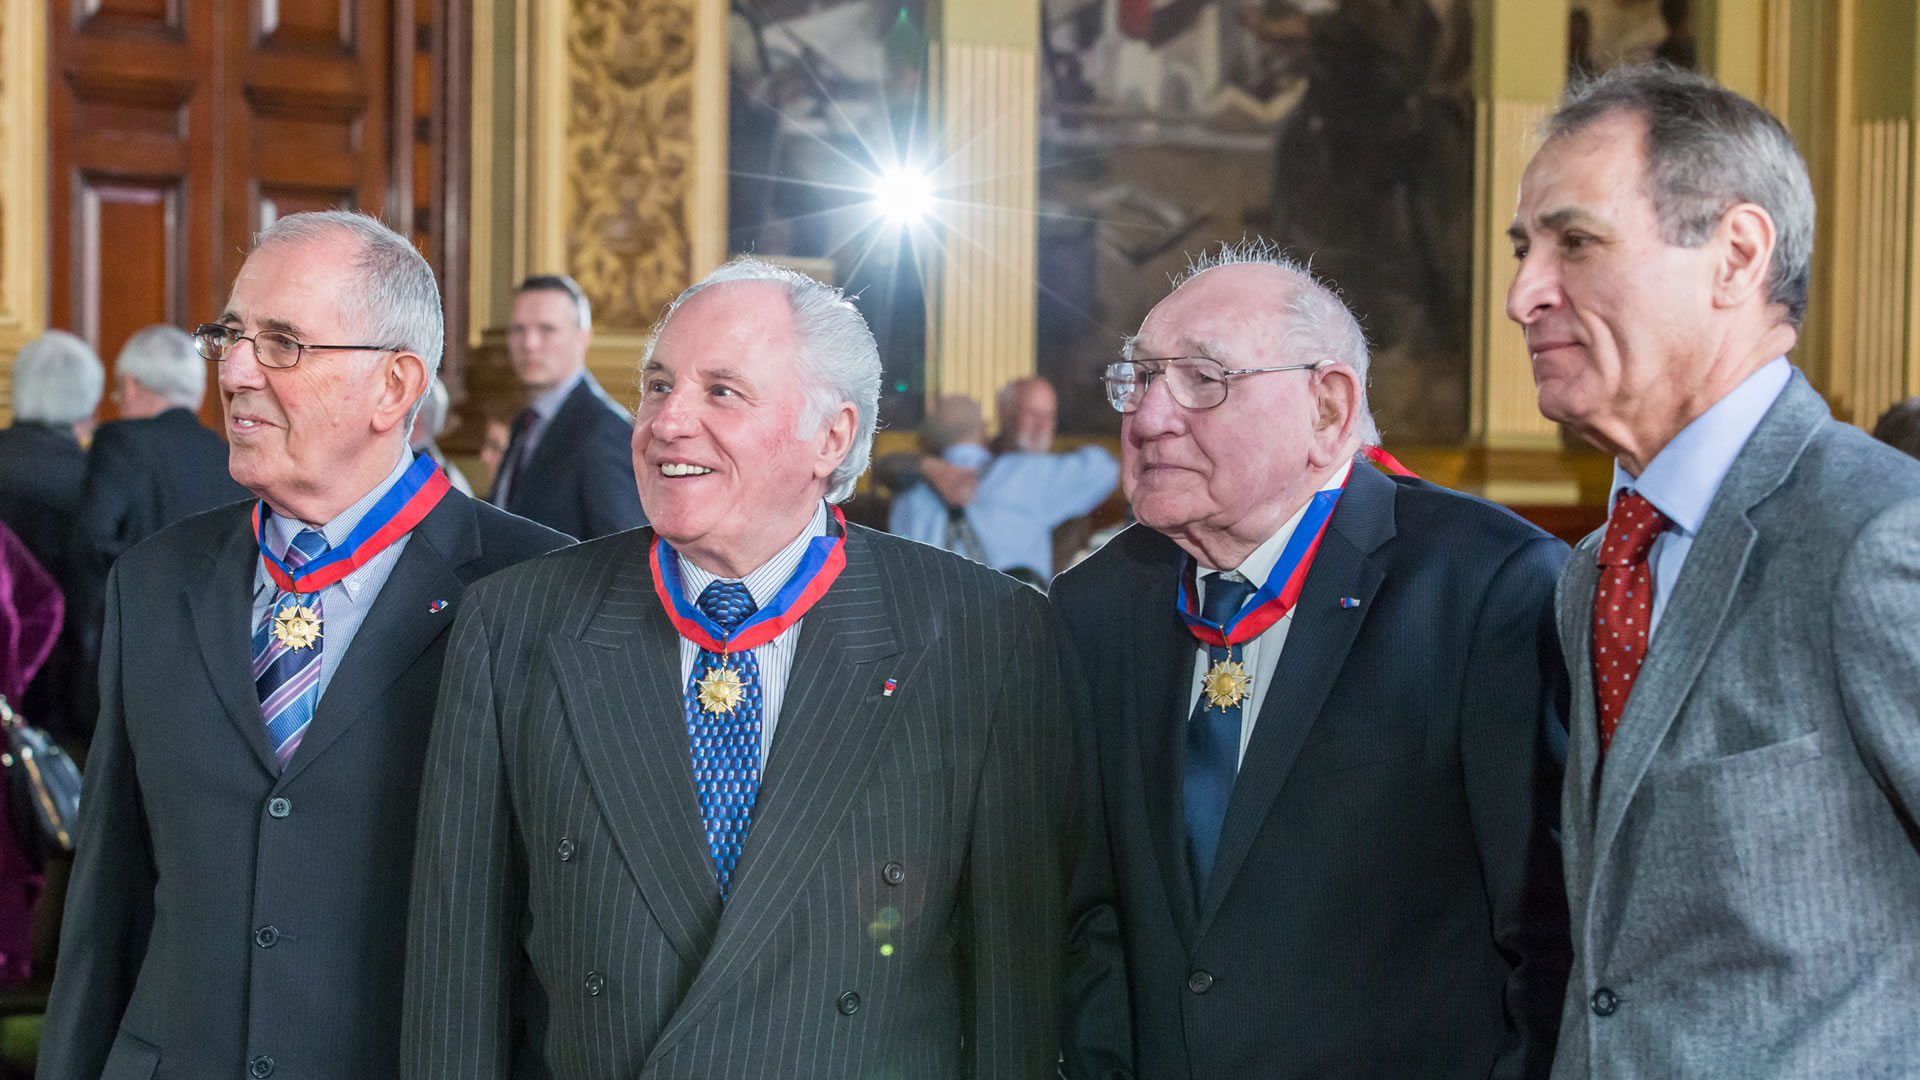 Medal ceremony, Glasgow